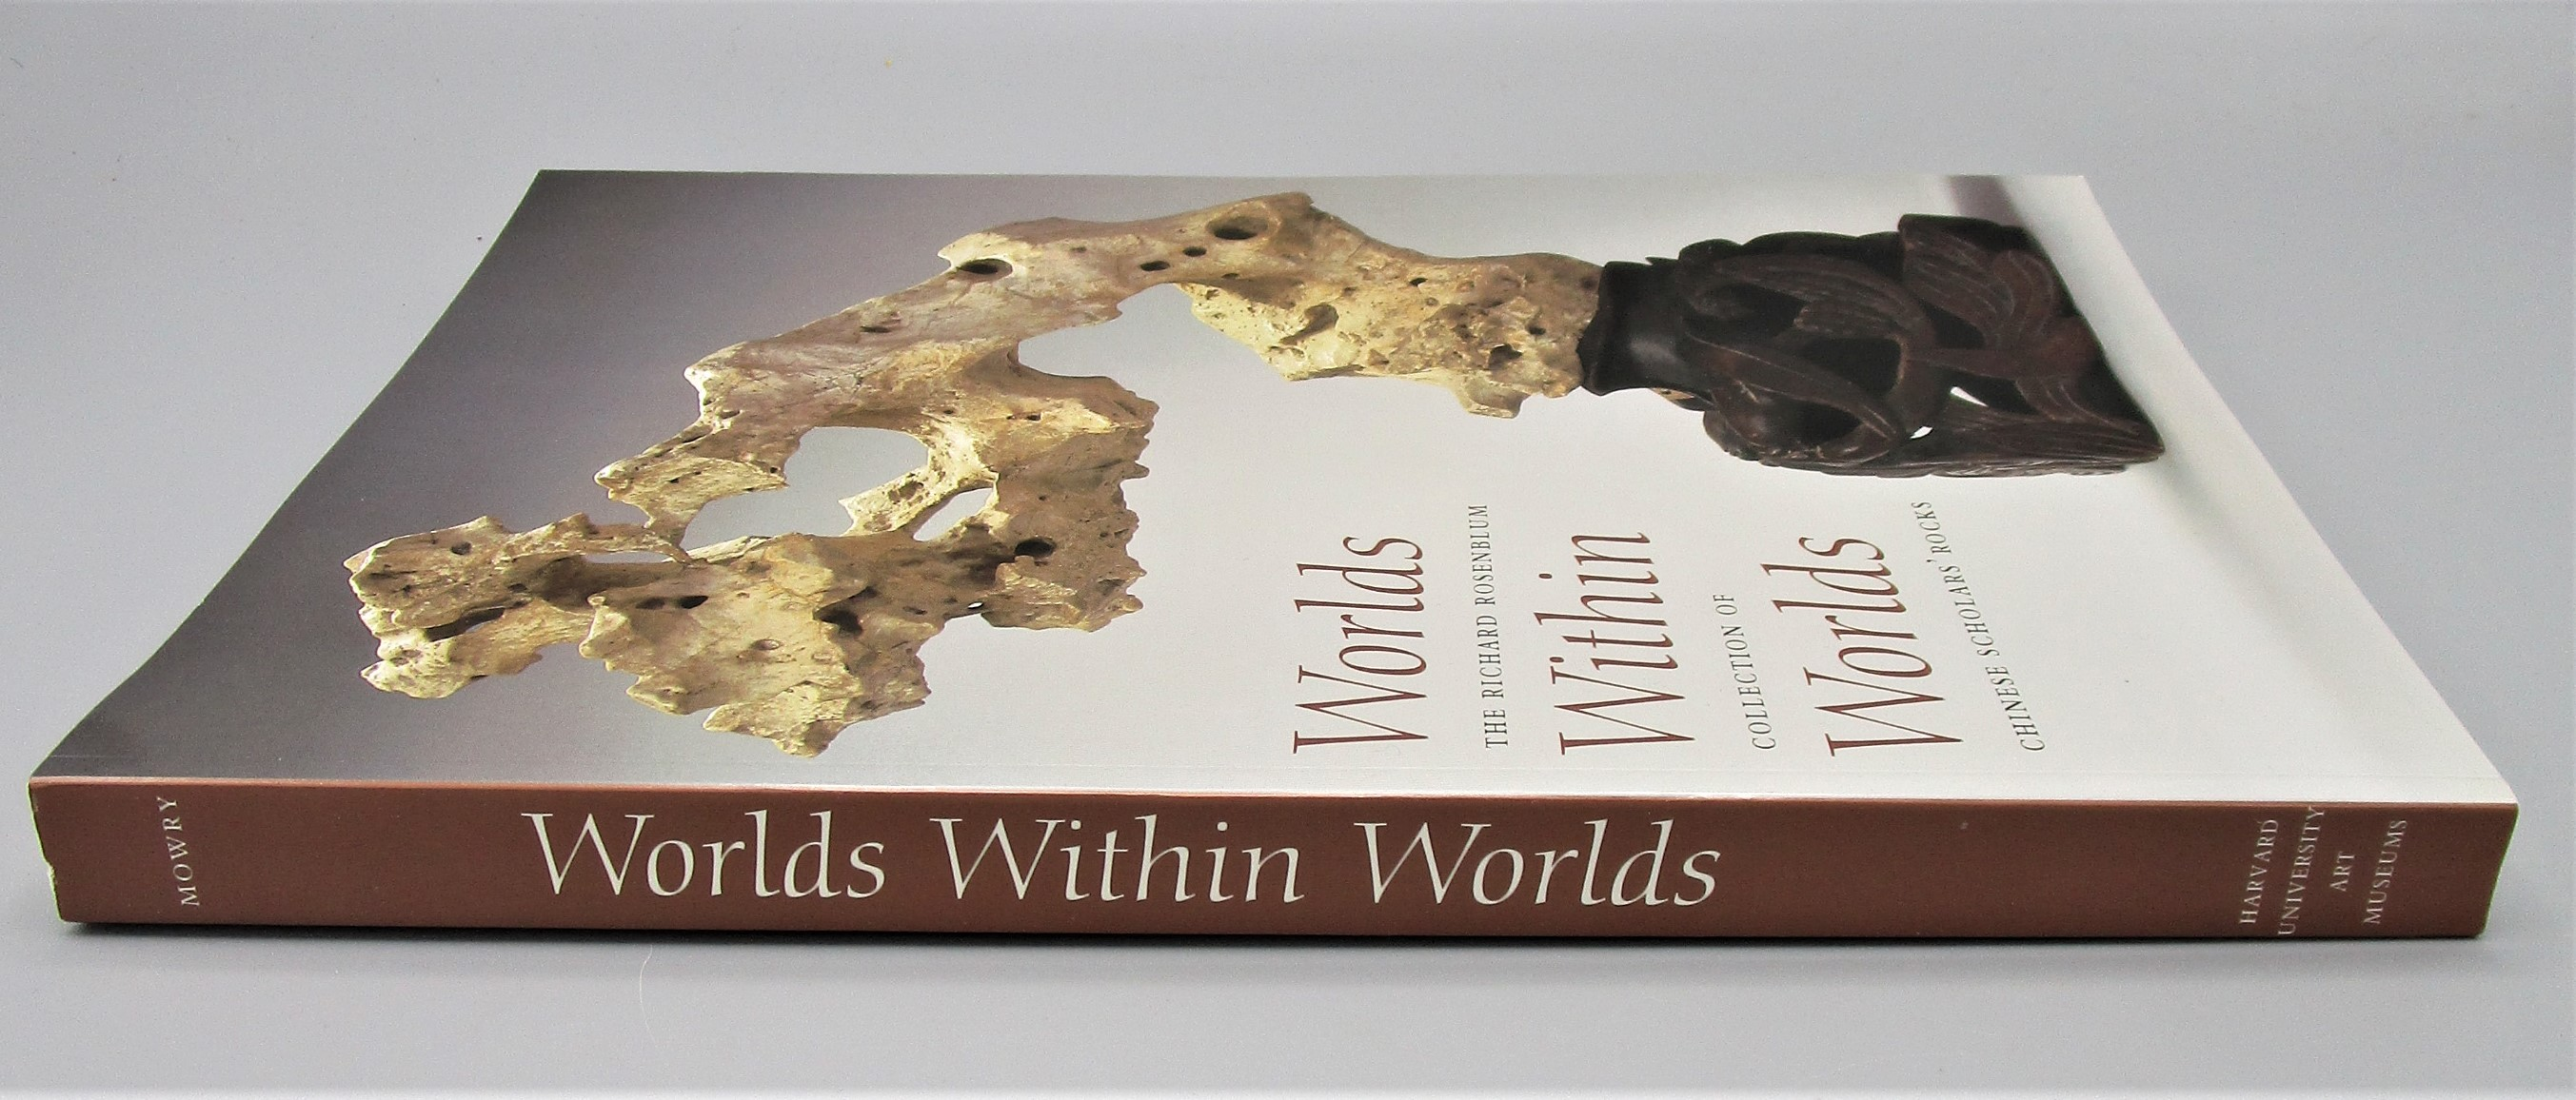 WORLDS WITHIN WORLDS, by Robert D. Mowry - 1997